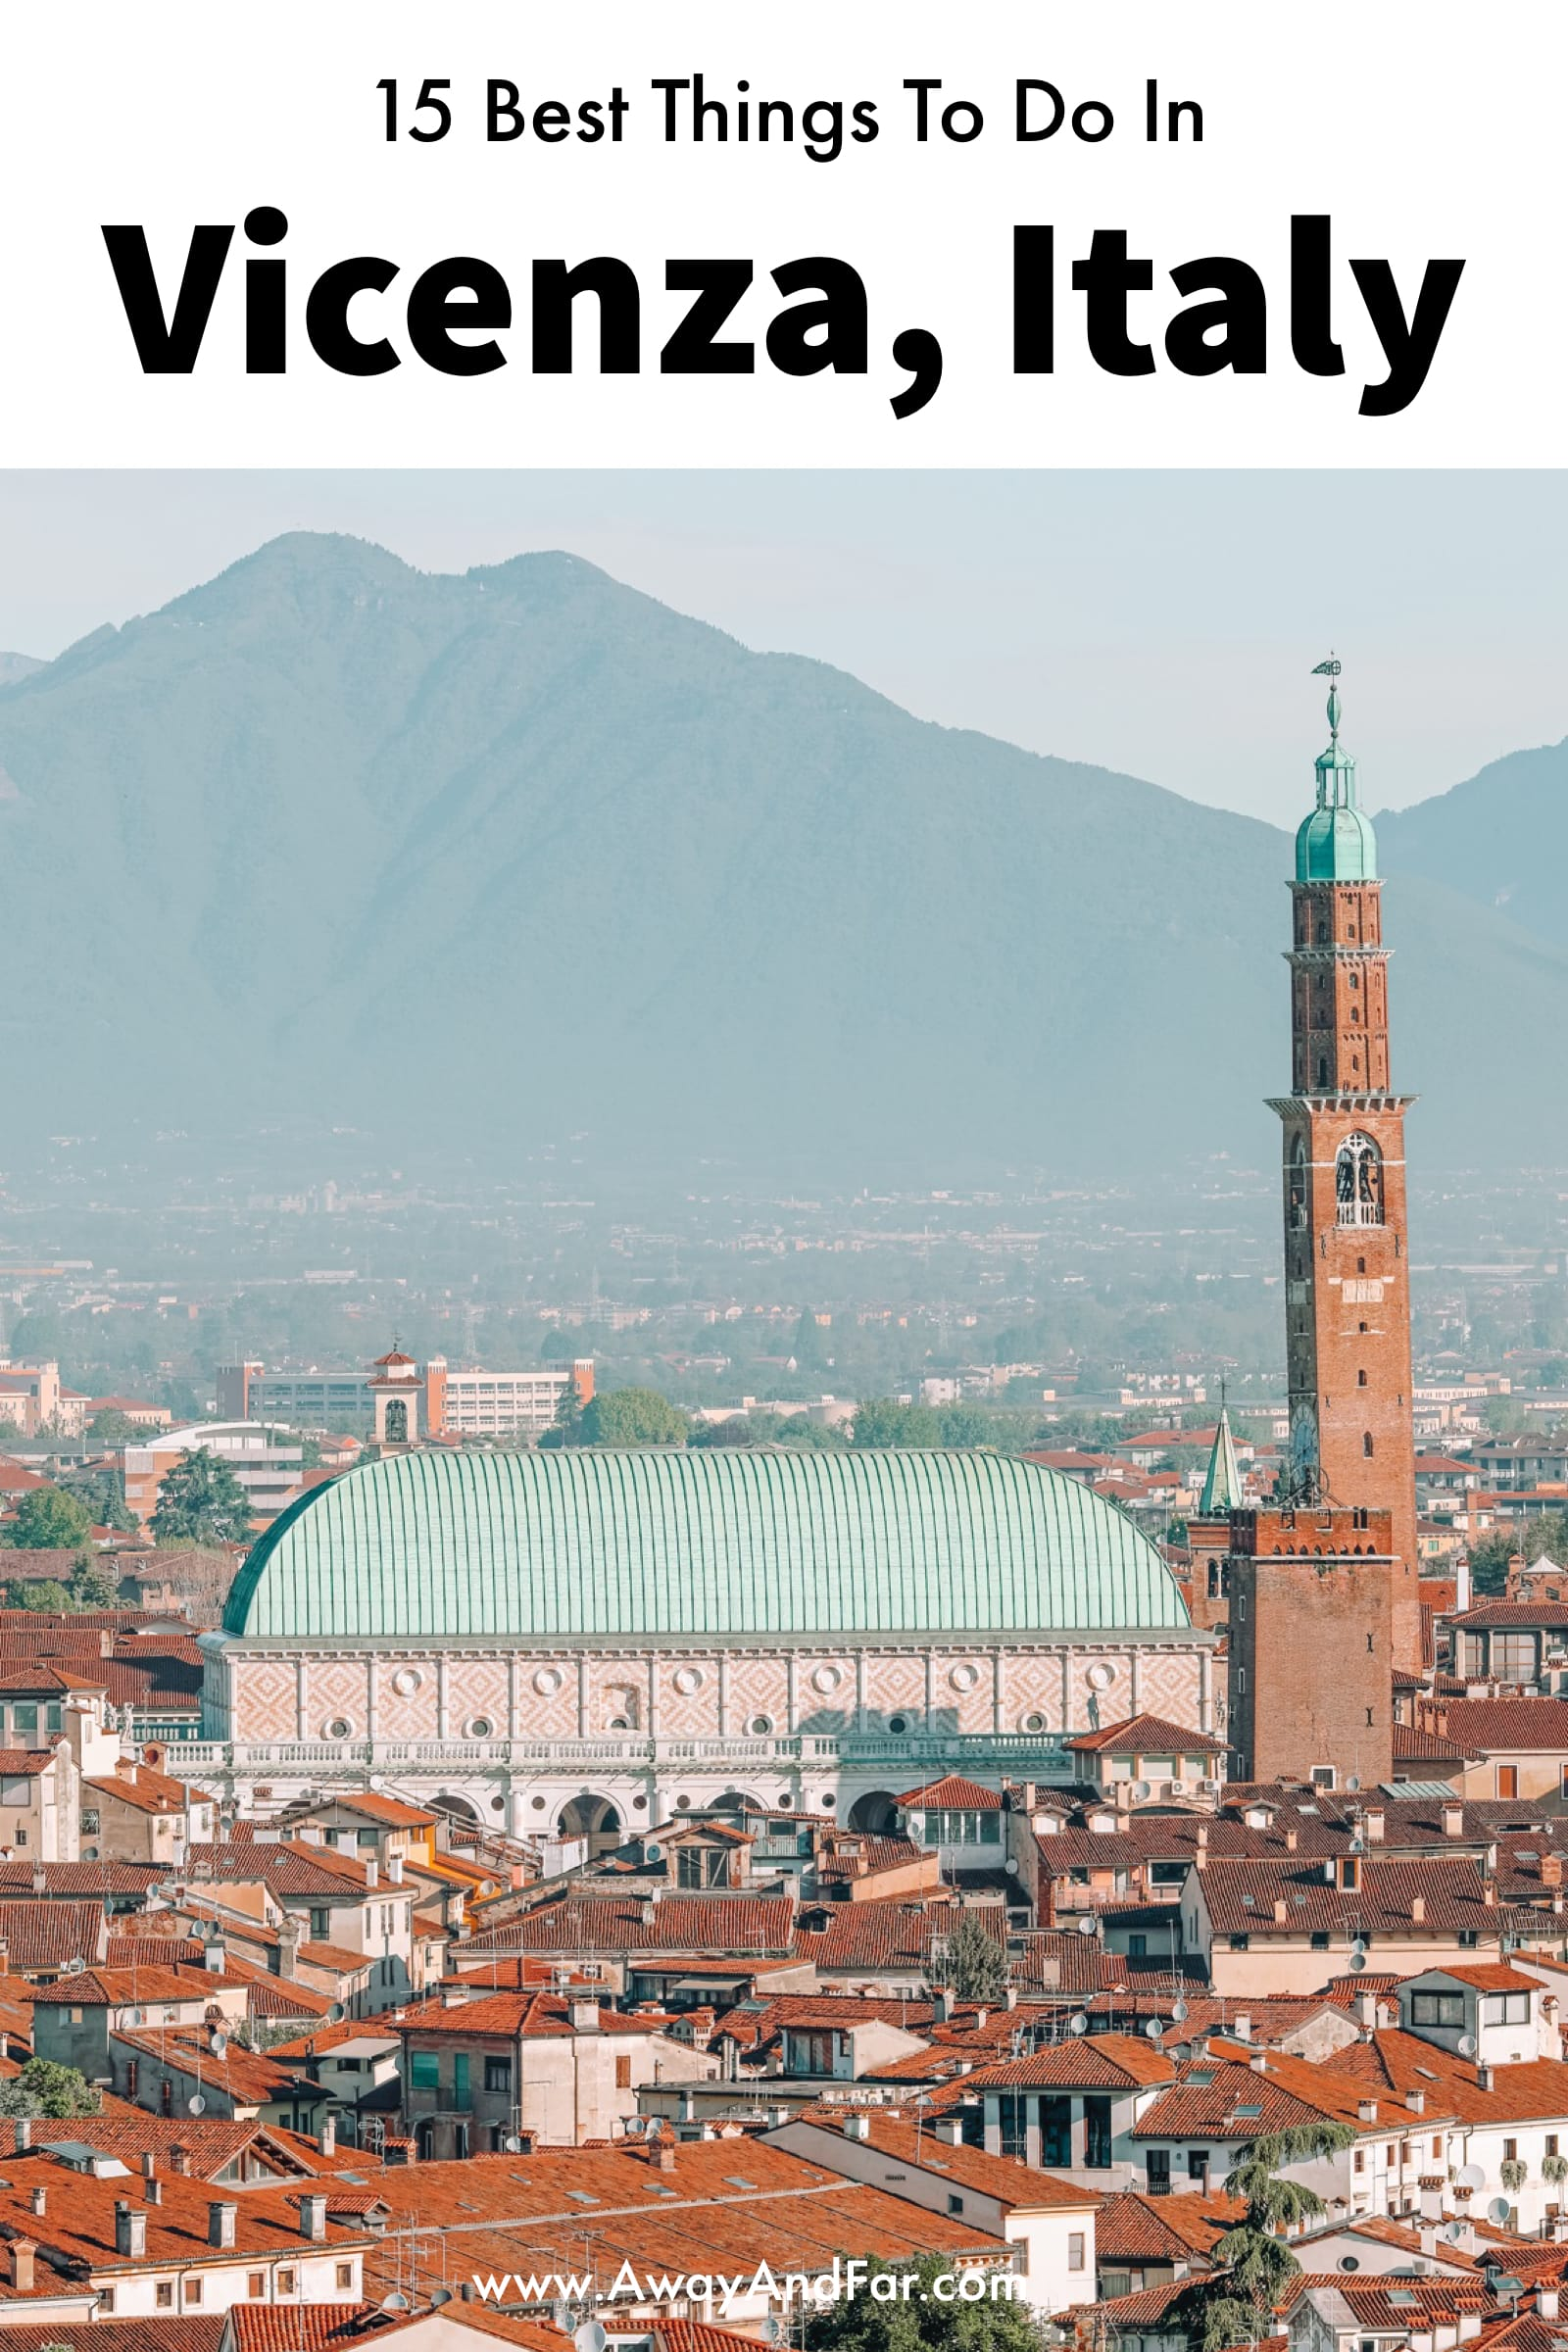 15 Best Things To Do In Vicenza, Italy (1)